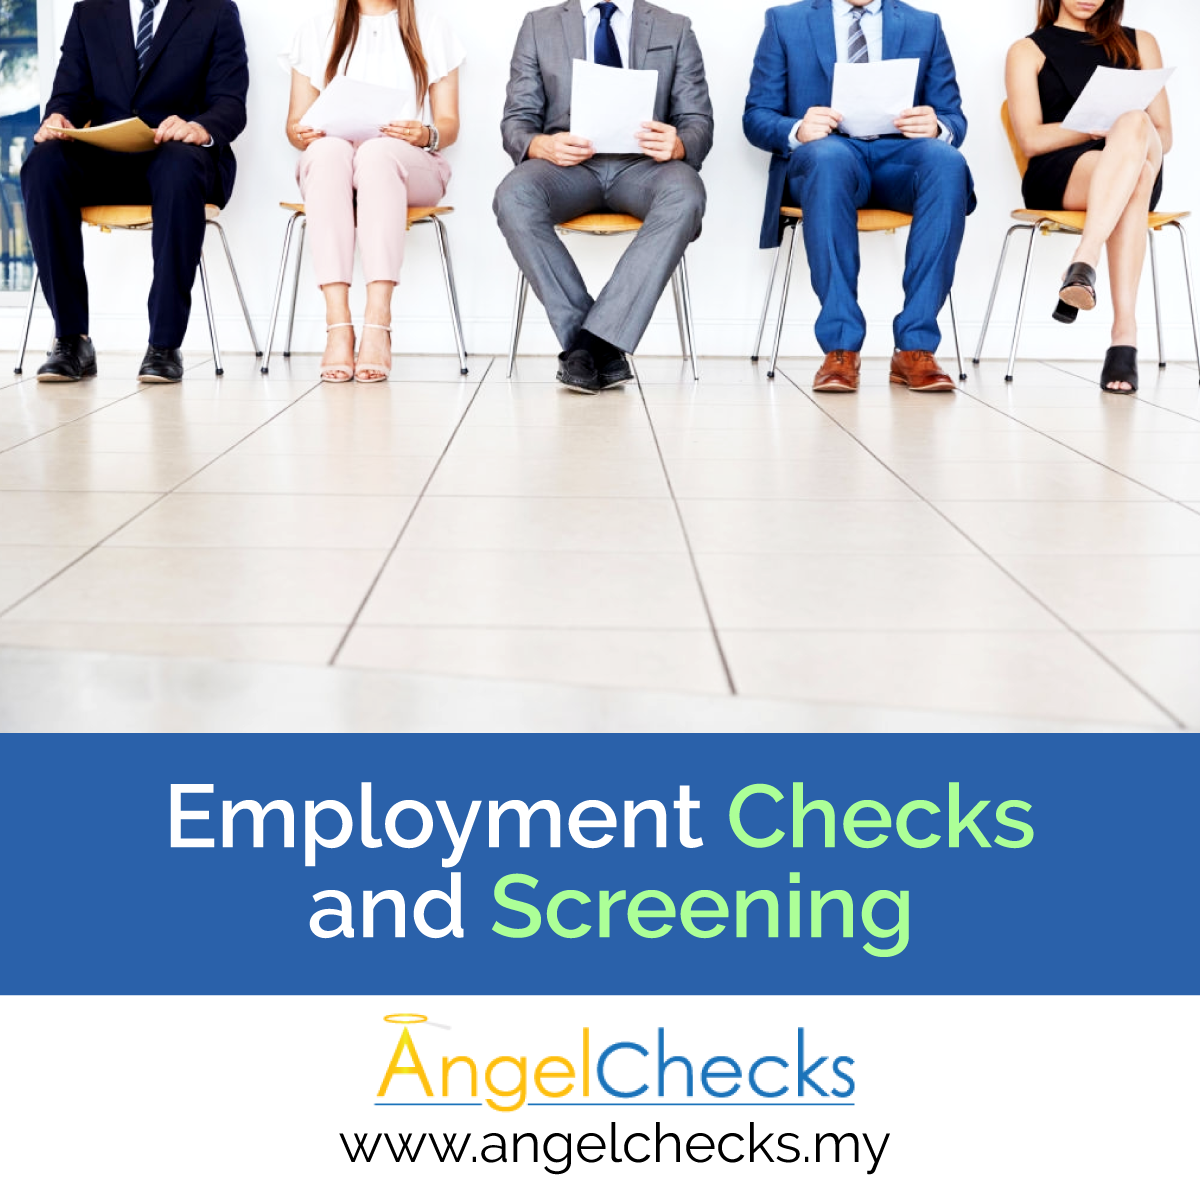 Employment Checks And Screening Employment Background Check Business Problems Small Business Success